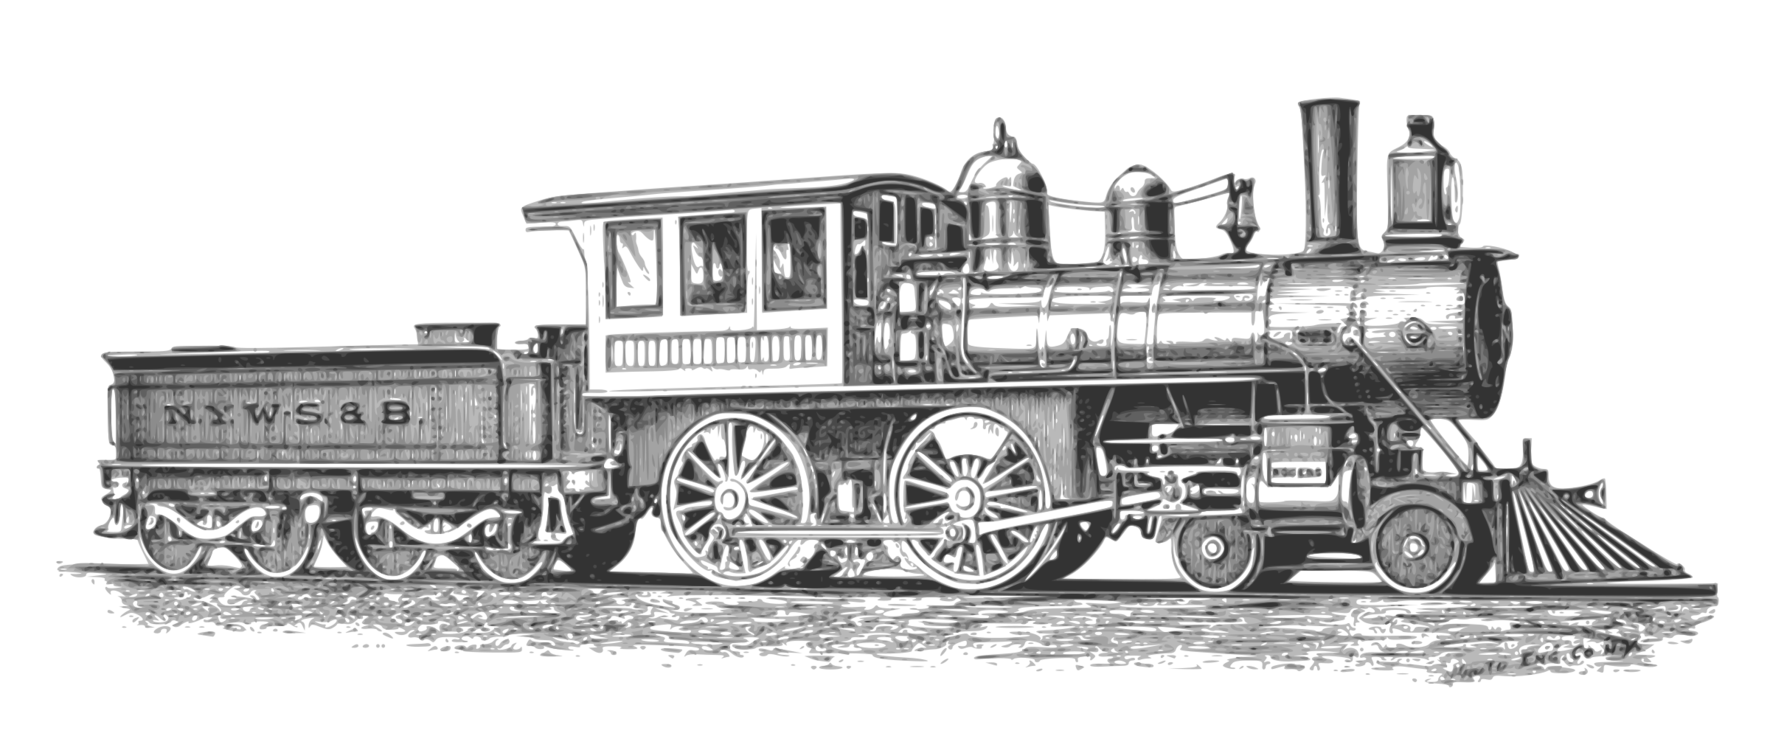 Rolling Stock,Track,Motor Vehicle